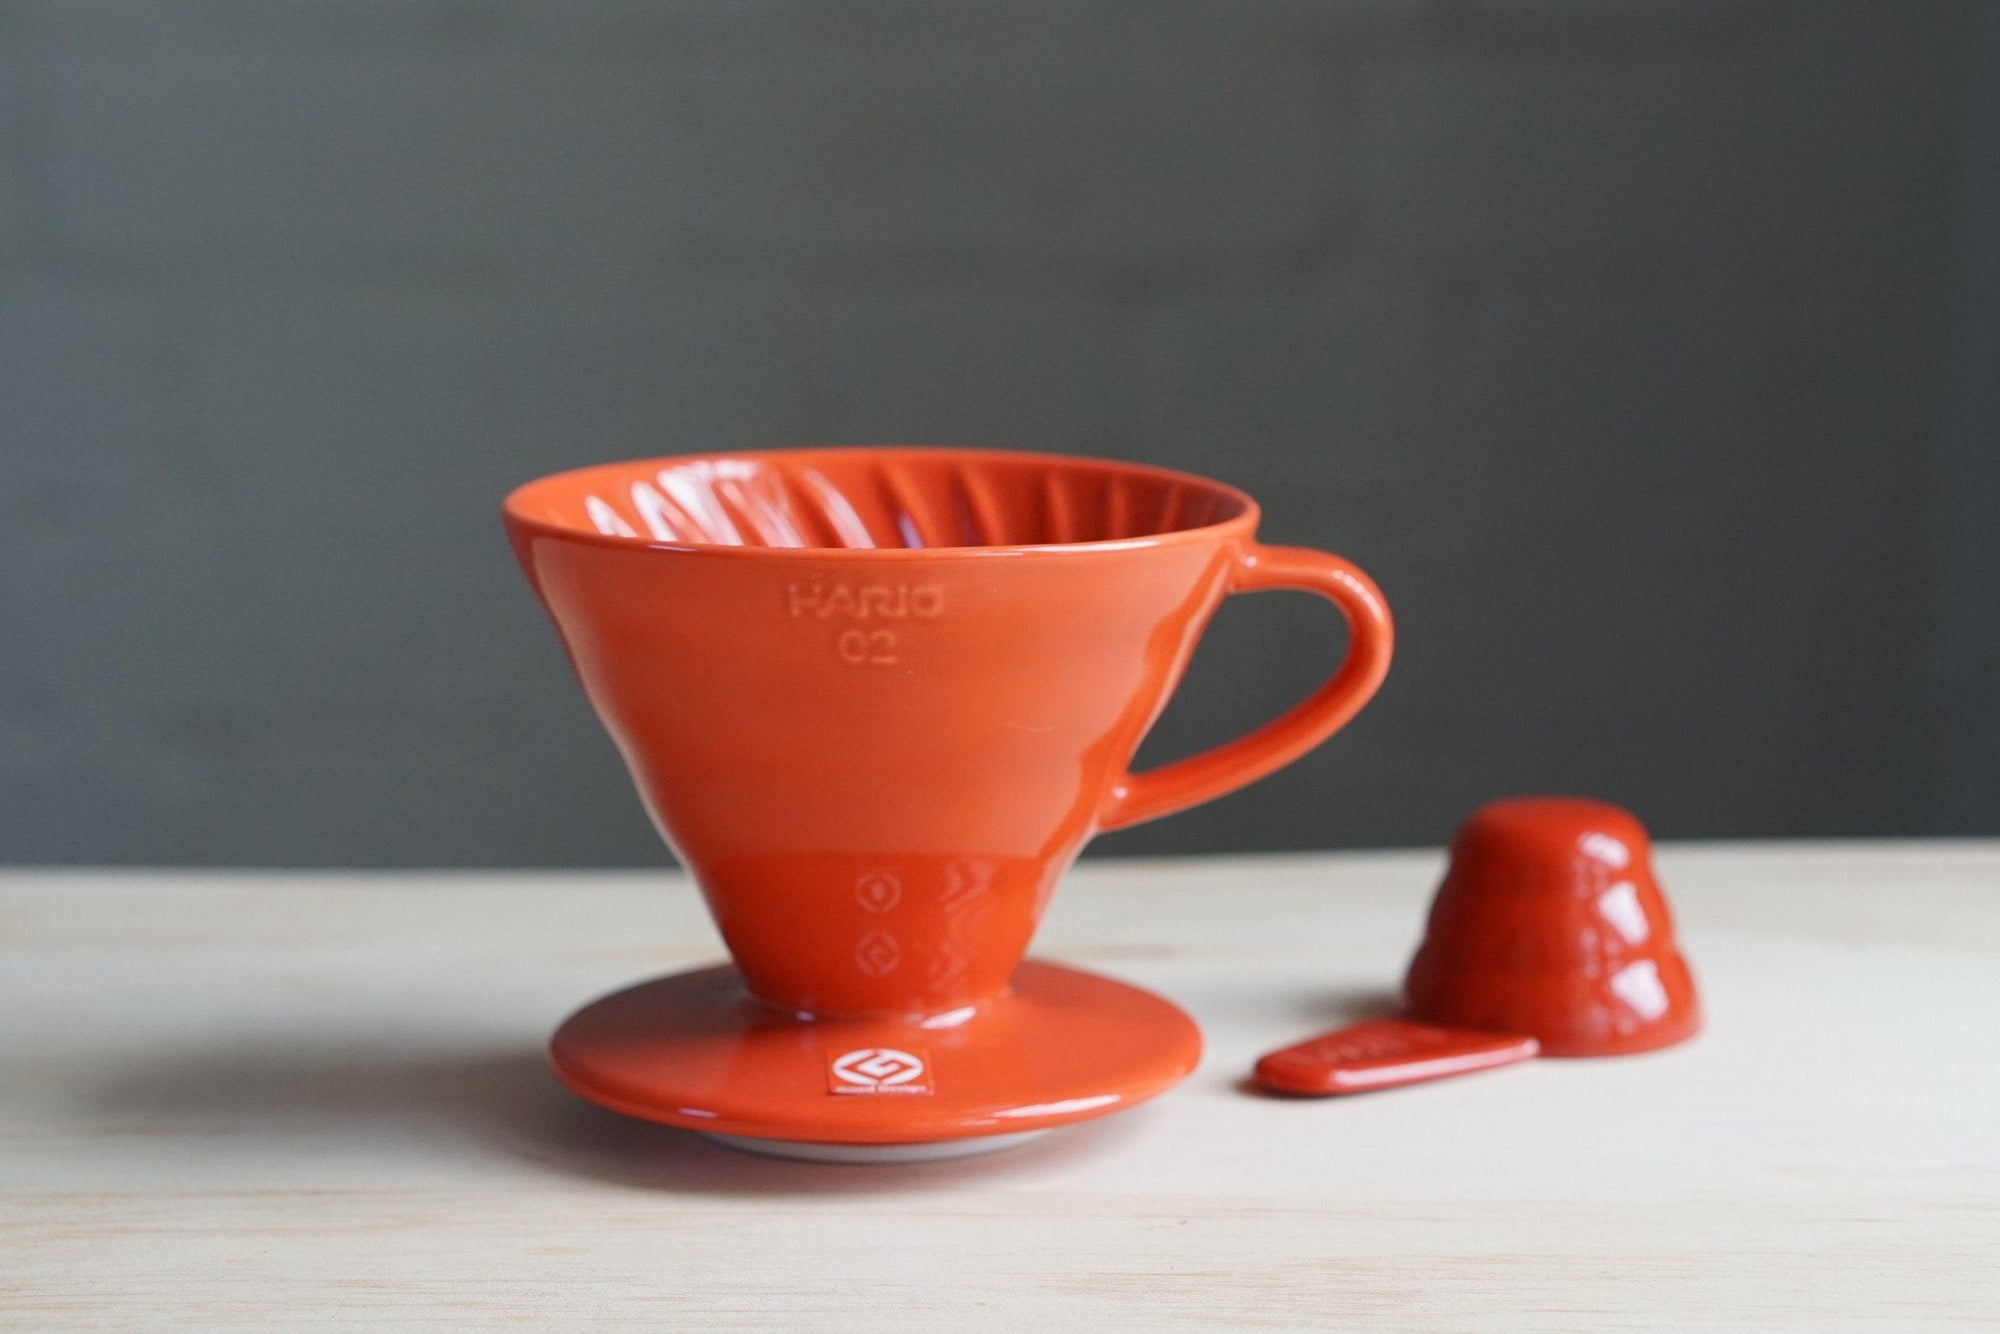 Hario V60 Dripper 02 Ceramic Red Dripper Hario Hario V60 Dripper 02 Ceramic Red